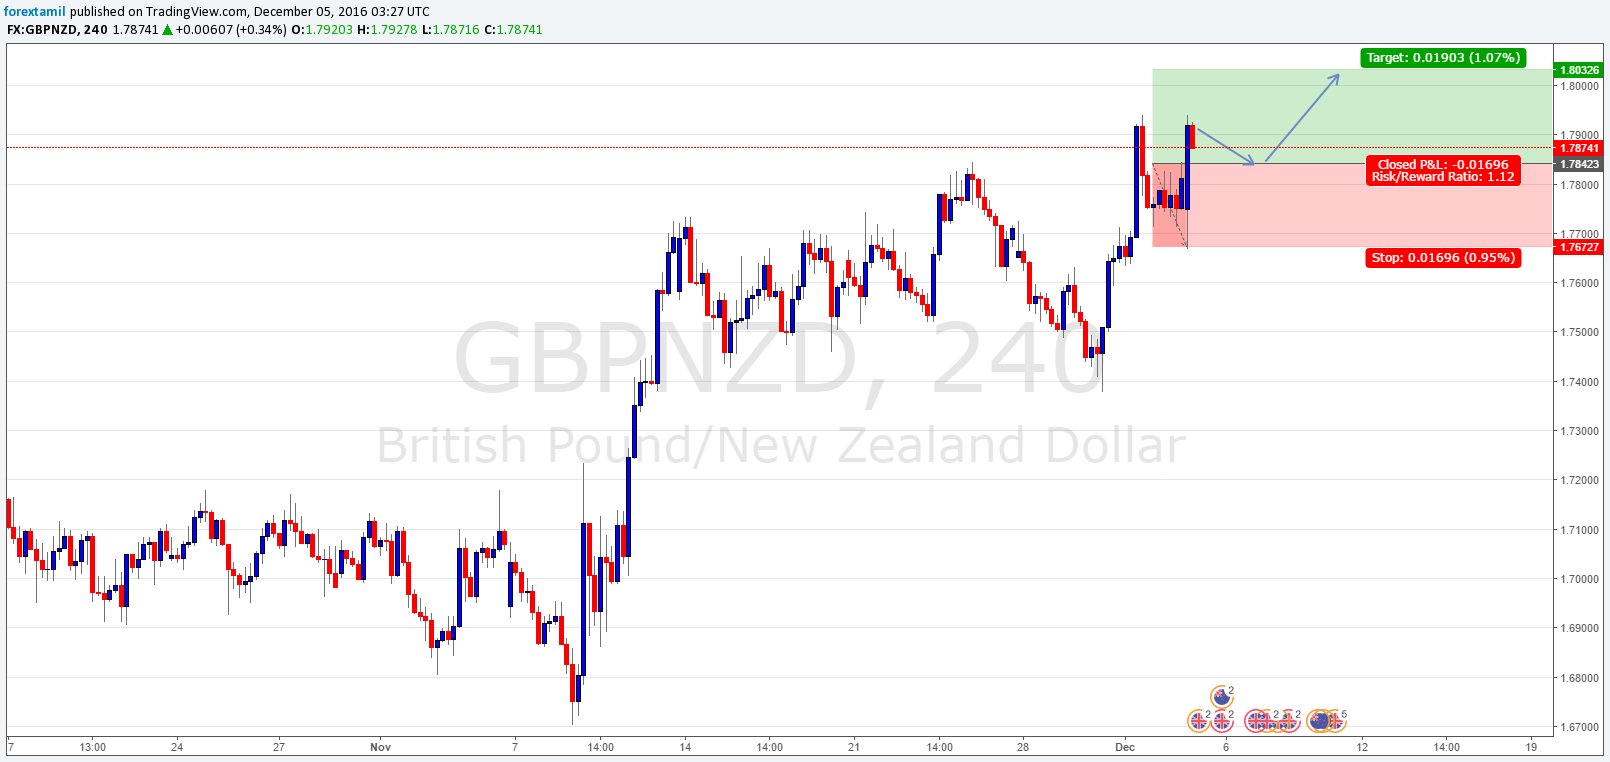 Q-FOREX LIVE CHALLENGING SIGNALS GBPNZD BUY ENTRY @ 1.78423